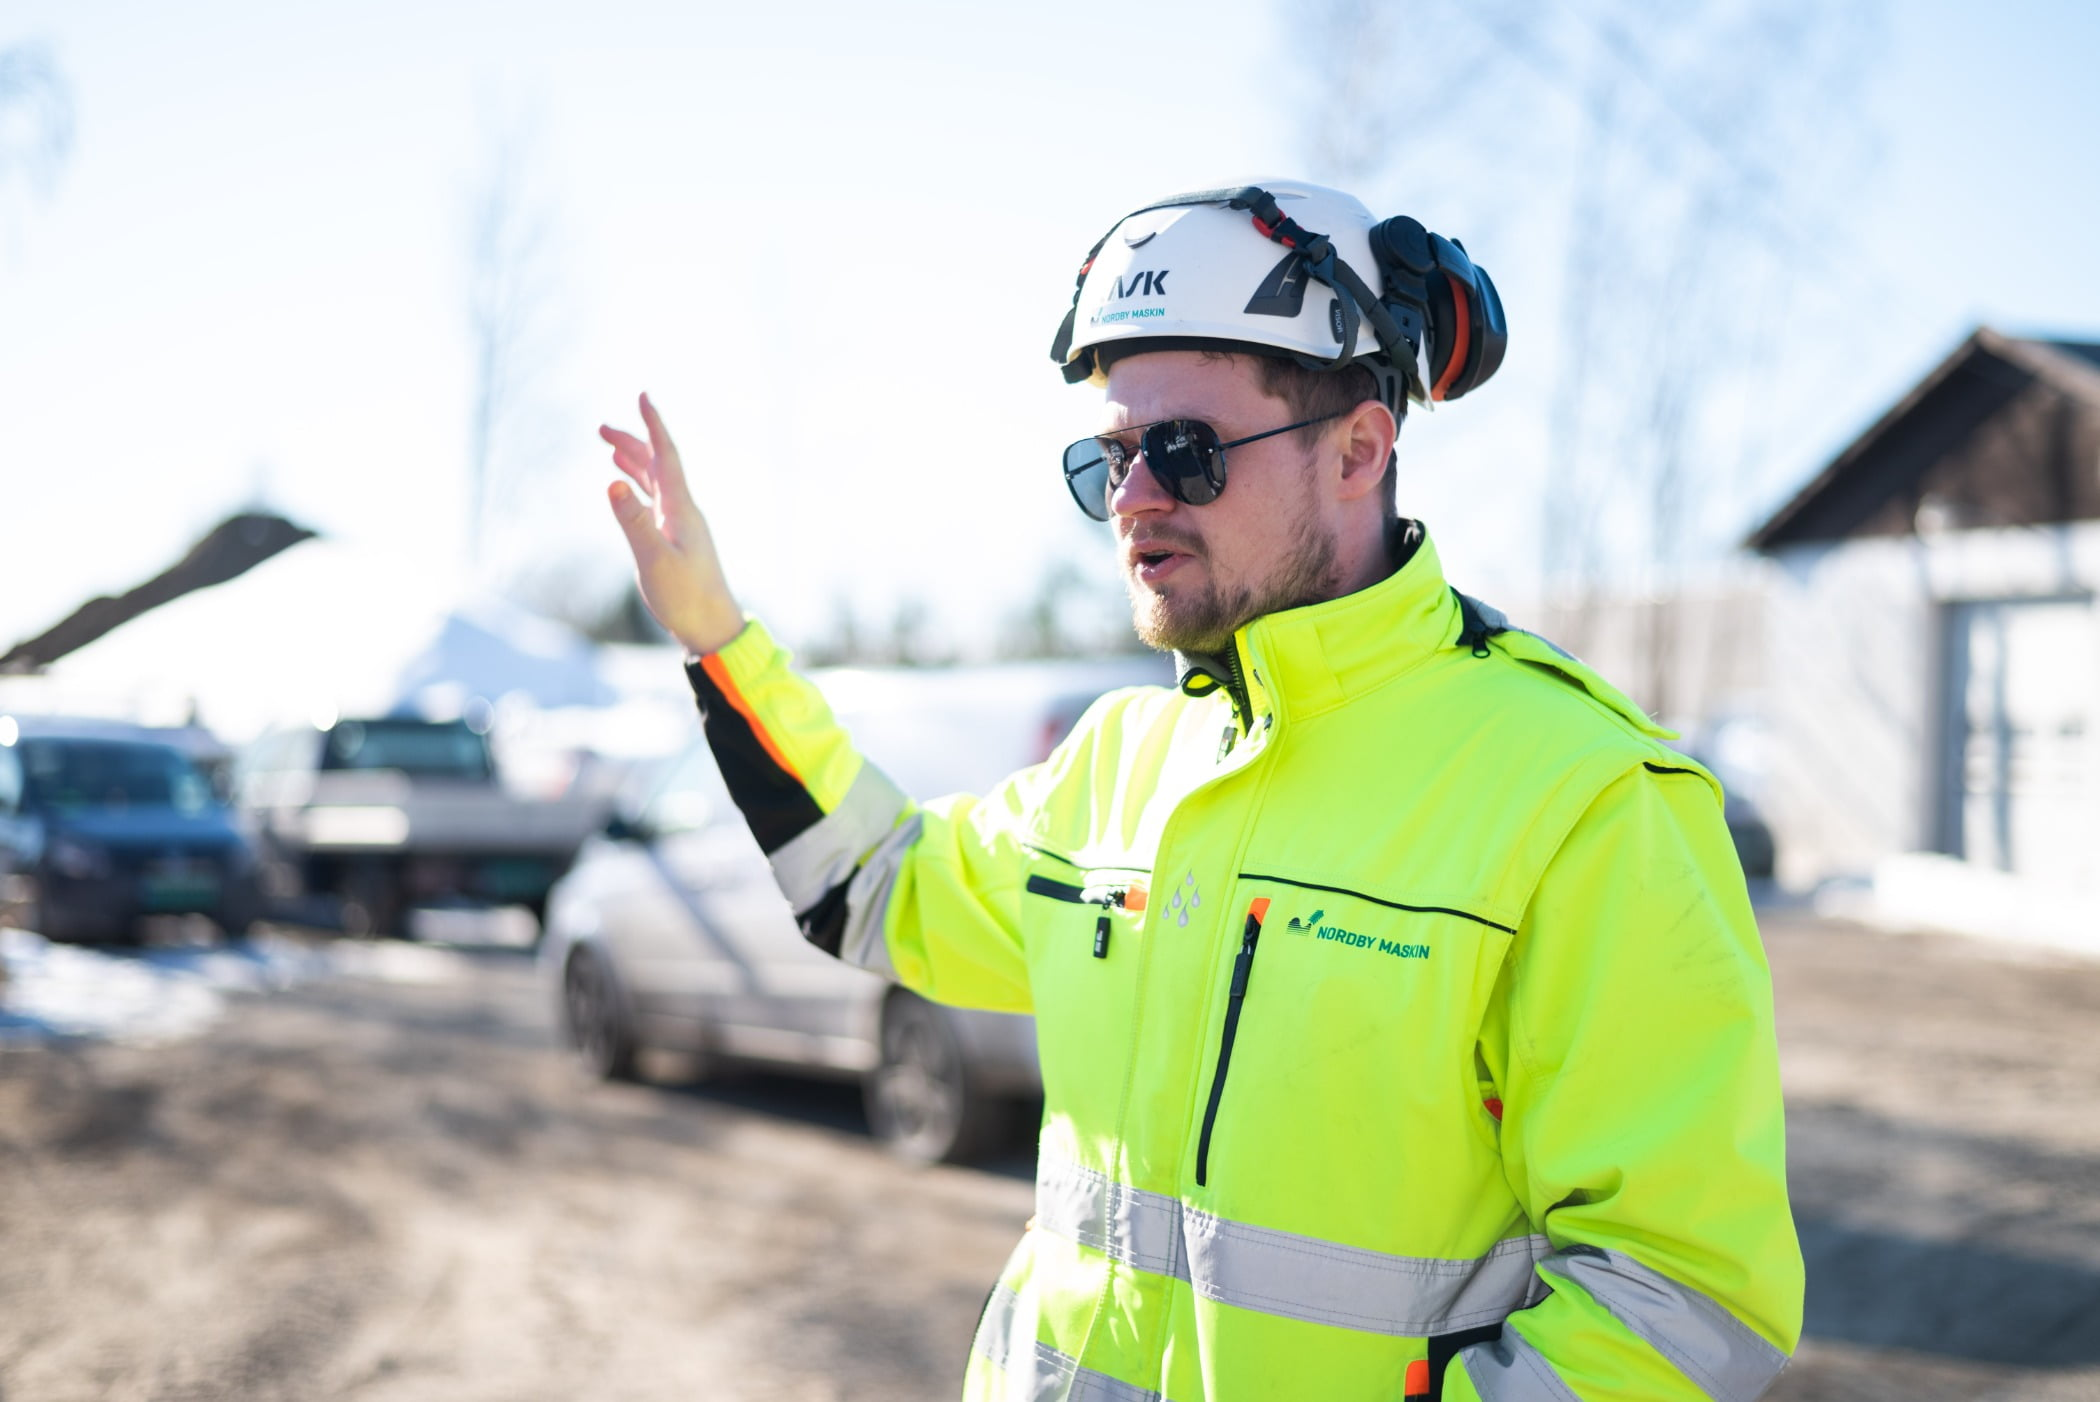 High-visibility clothing, Glasses, Sky, Car, Goggles, Cloud, Workwear, Helmet, Vehicle, Tire